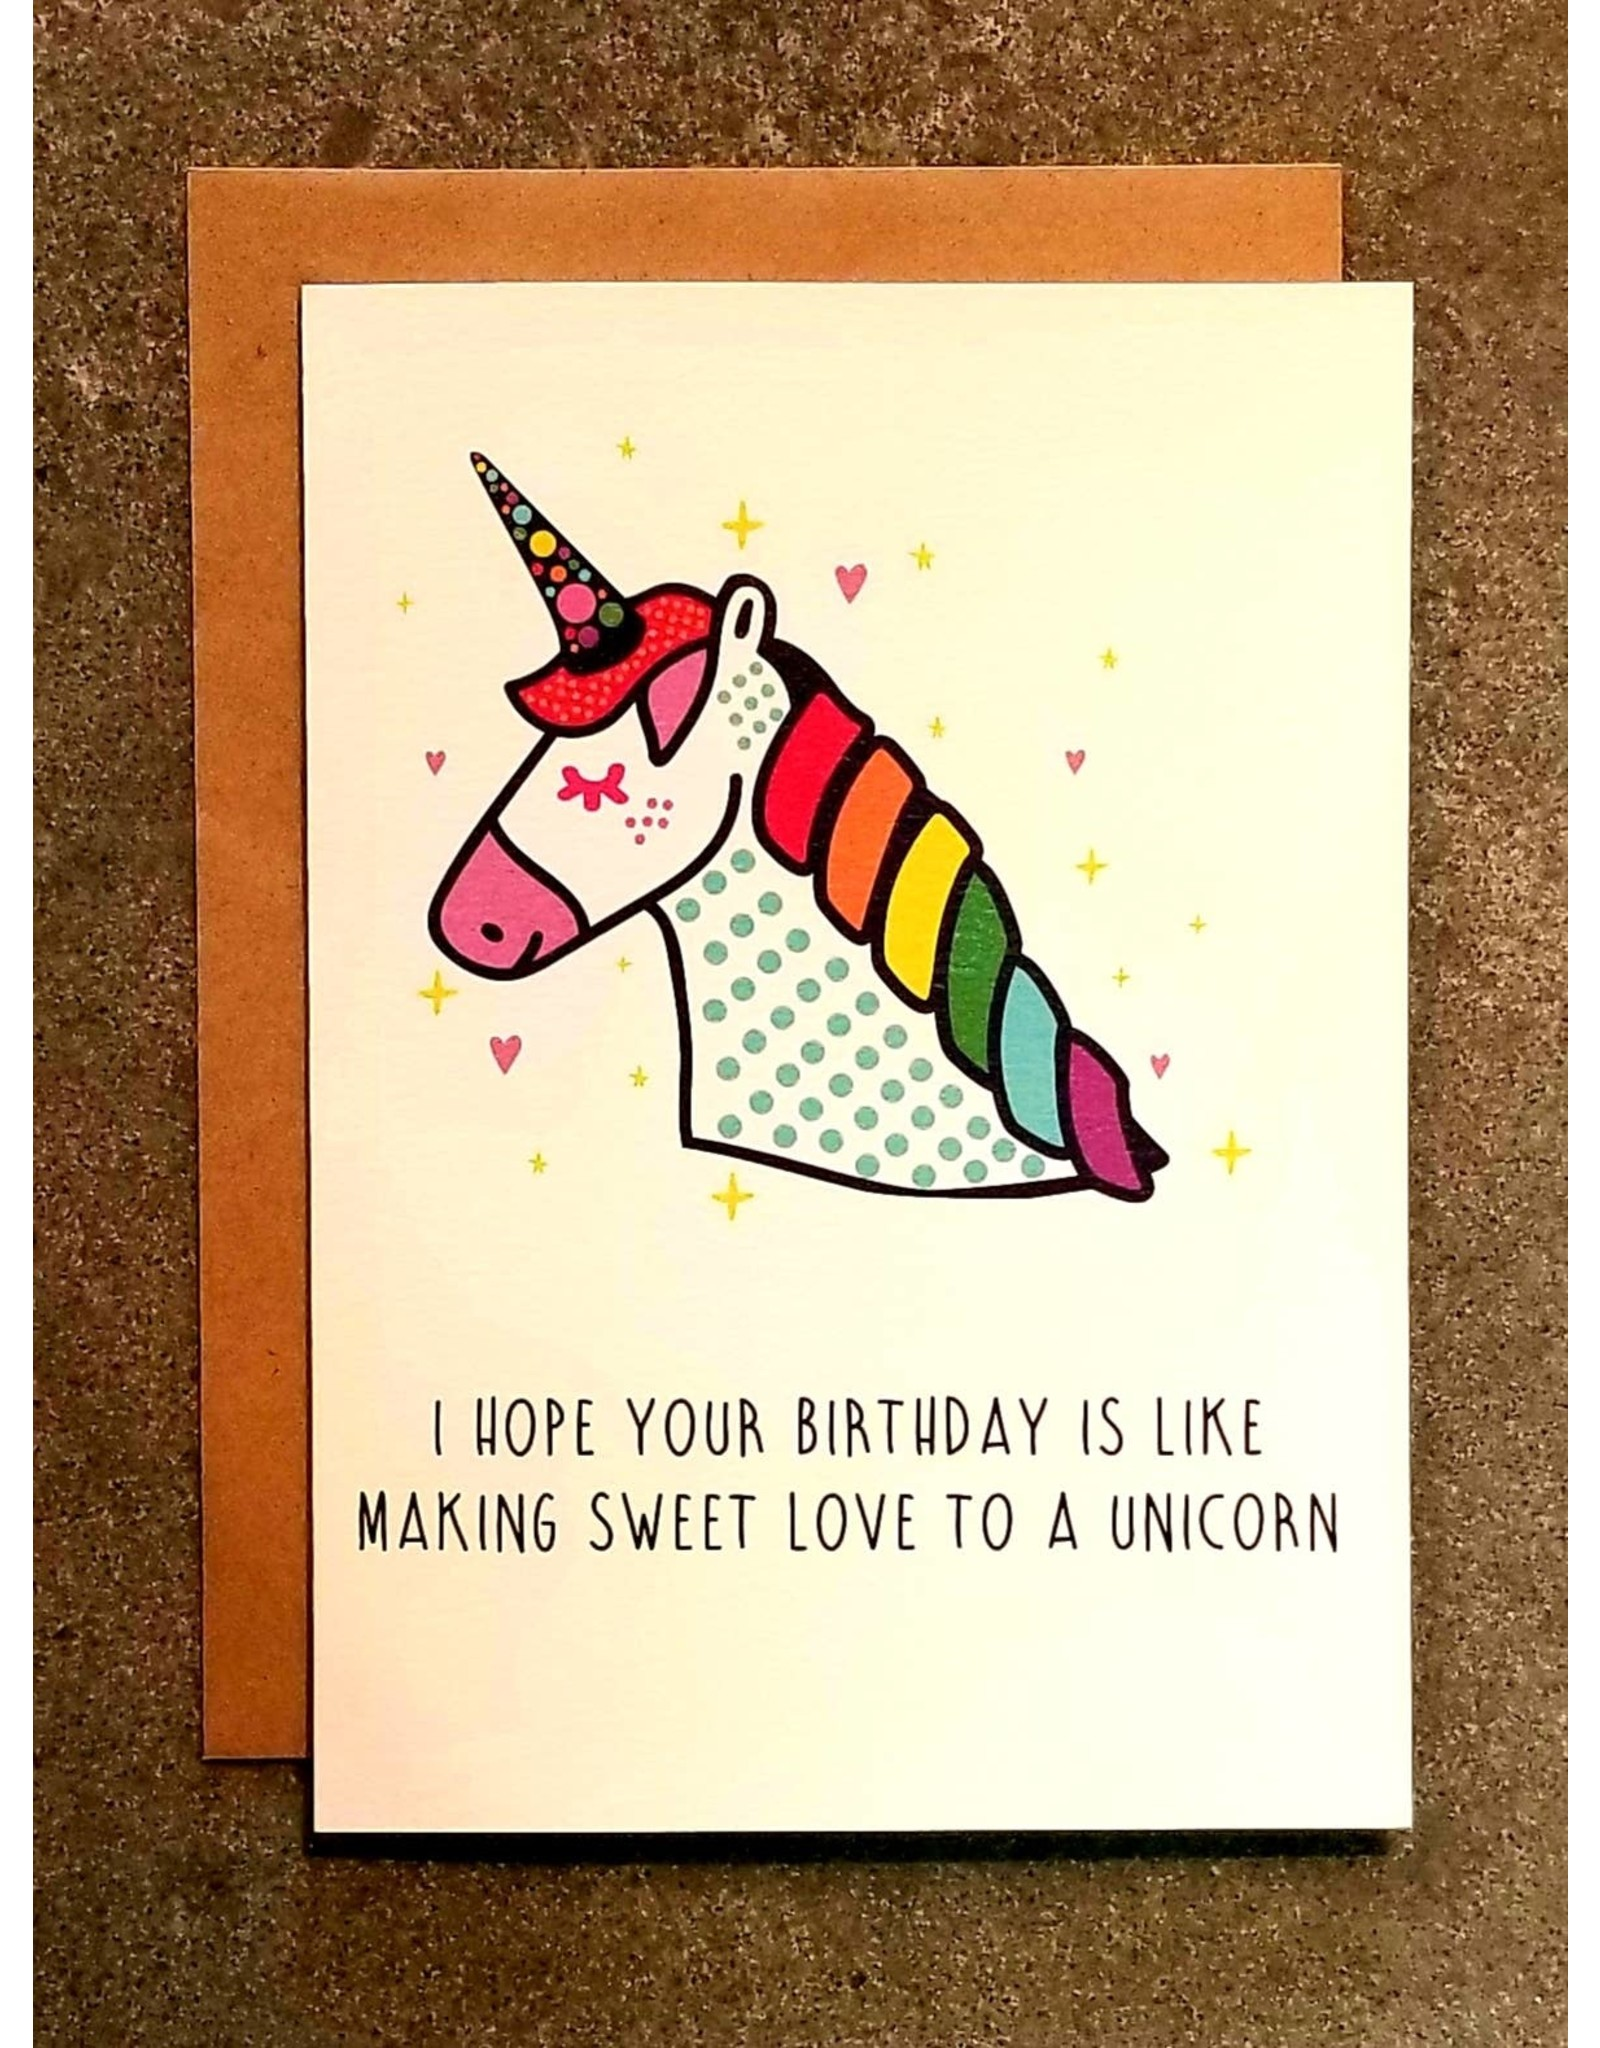 Thanks You're Welcome Card - Hope Your Birthday Is Like Making Love To A Unicorn